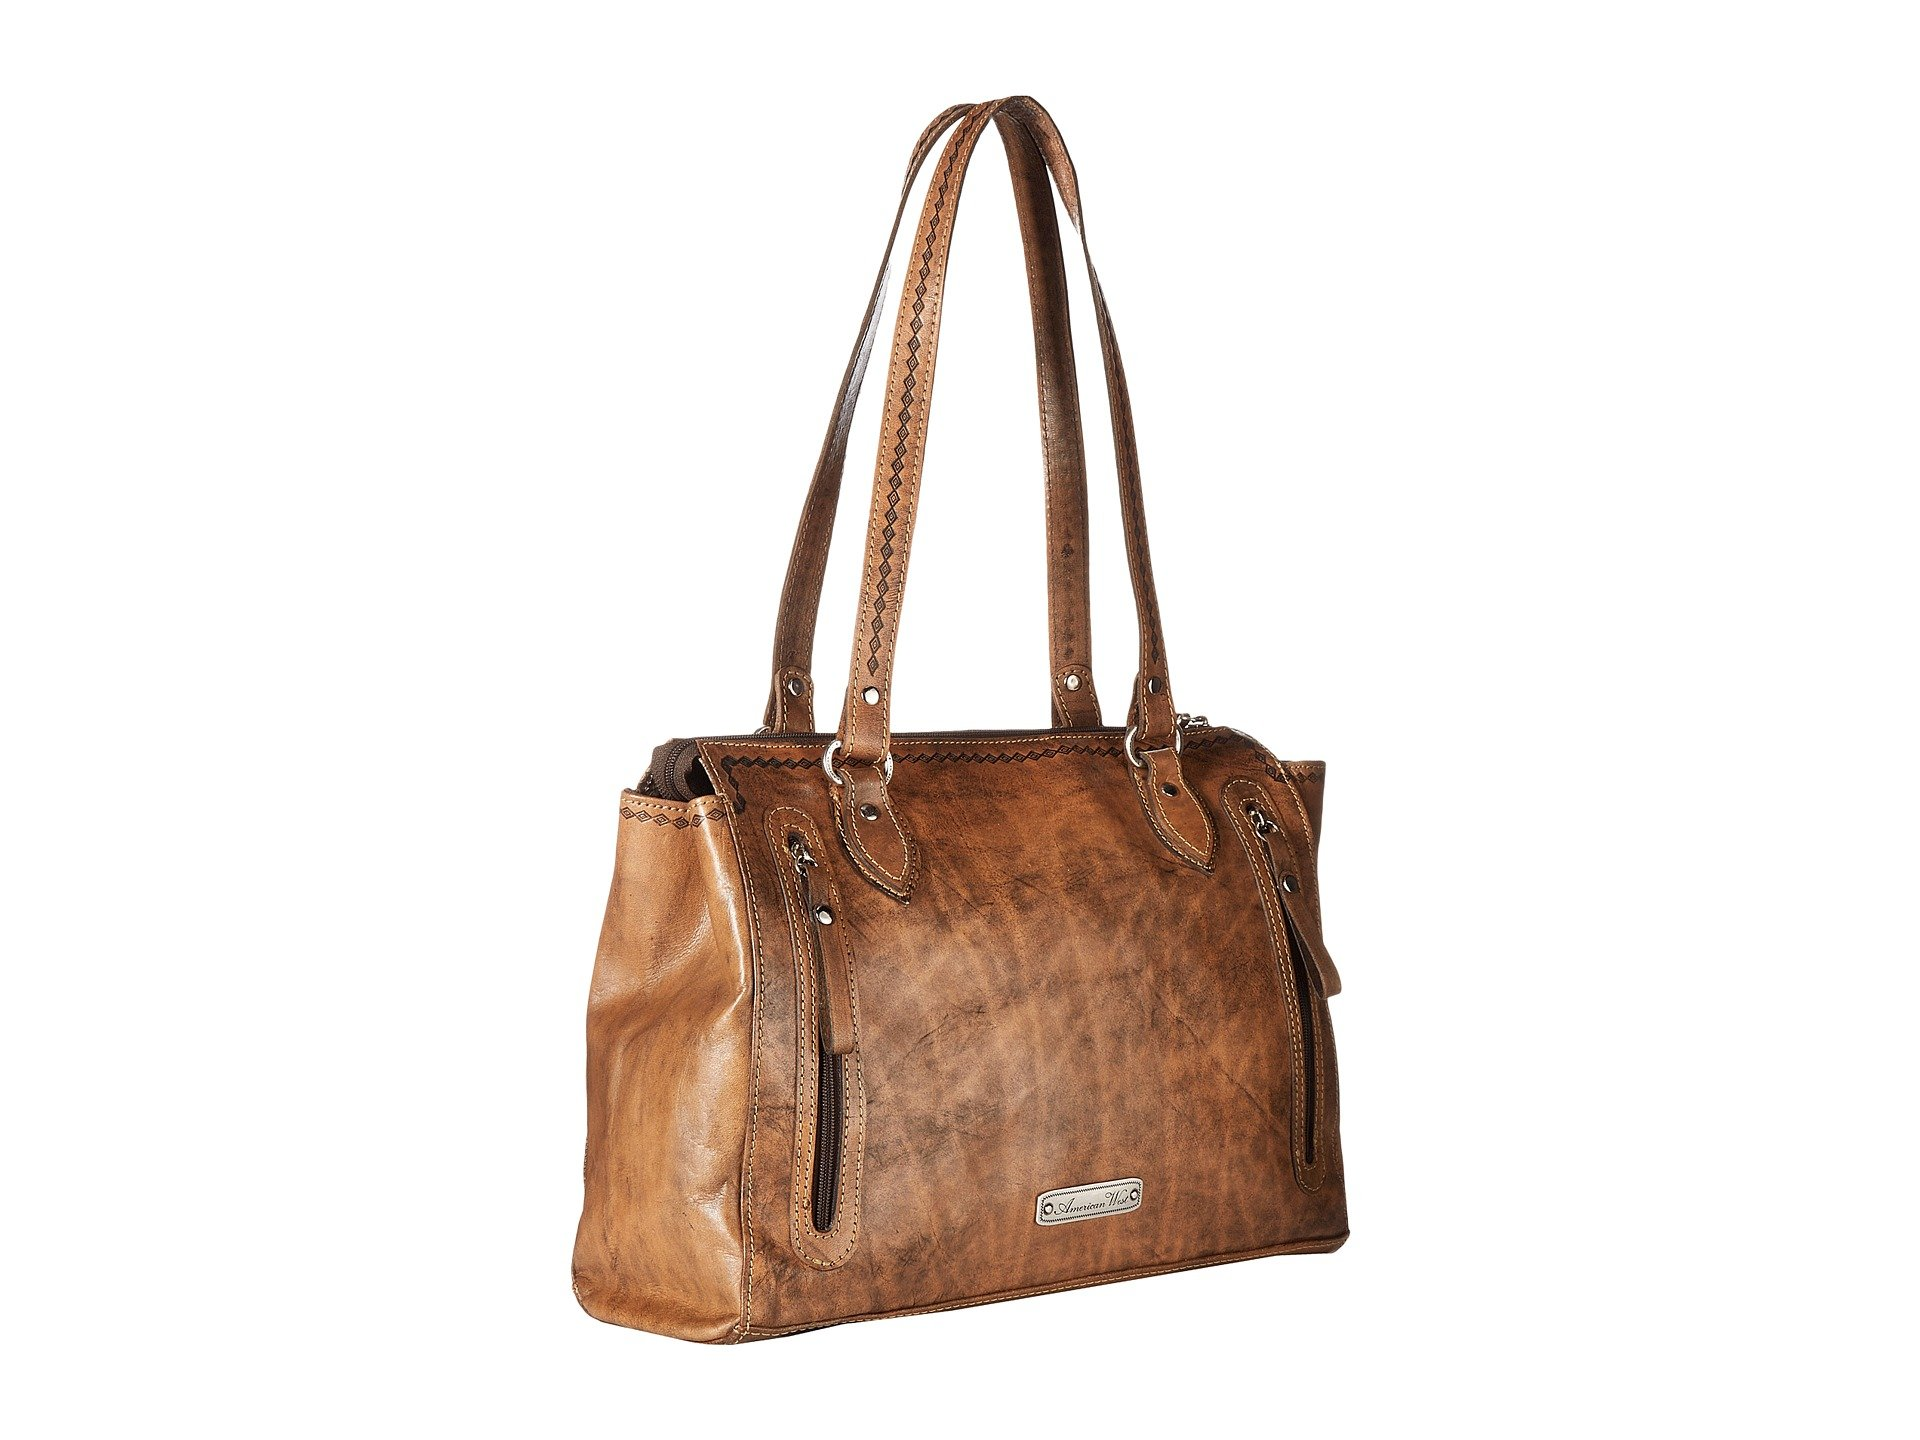 American Secret sand W West golden turquoise Tan Charcoal Compartment Native Distressed Brown Zip Tote Top Sun 1x1rU0gw